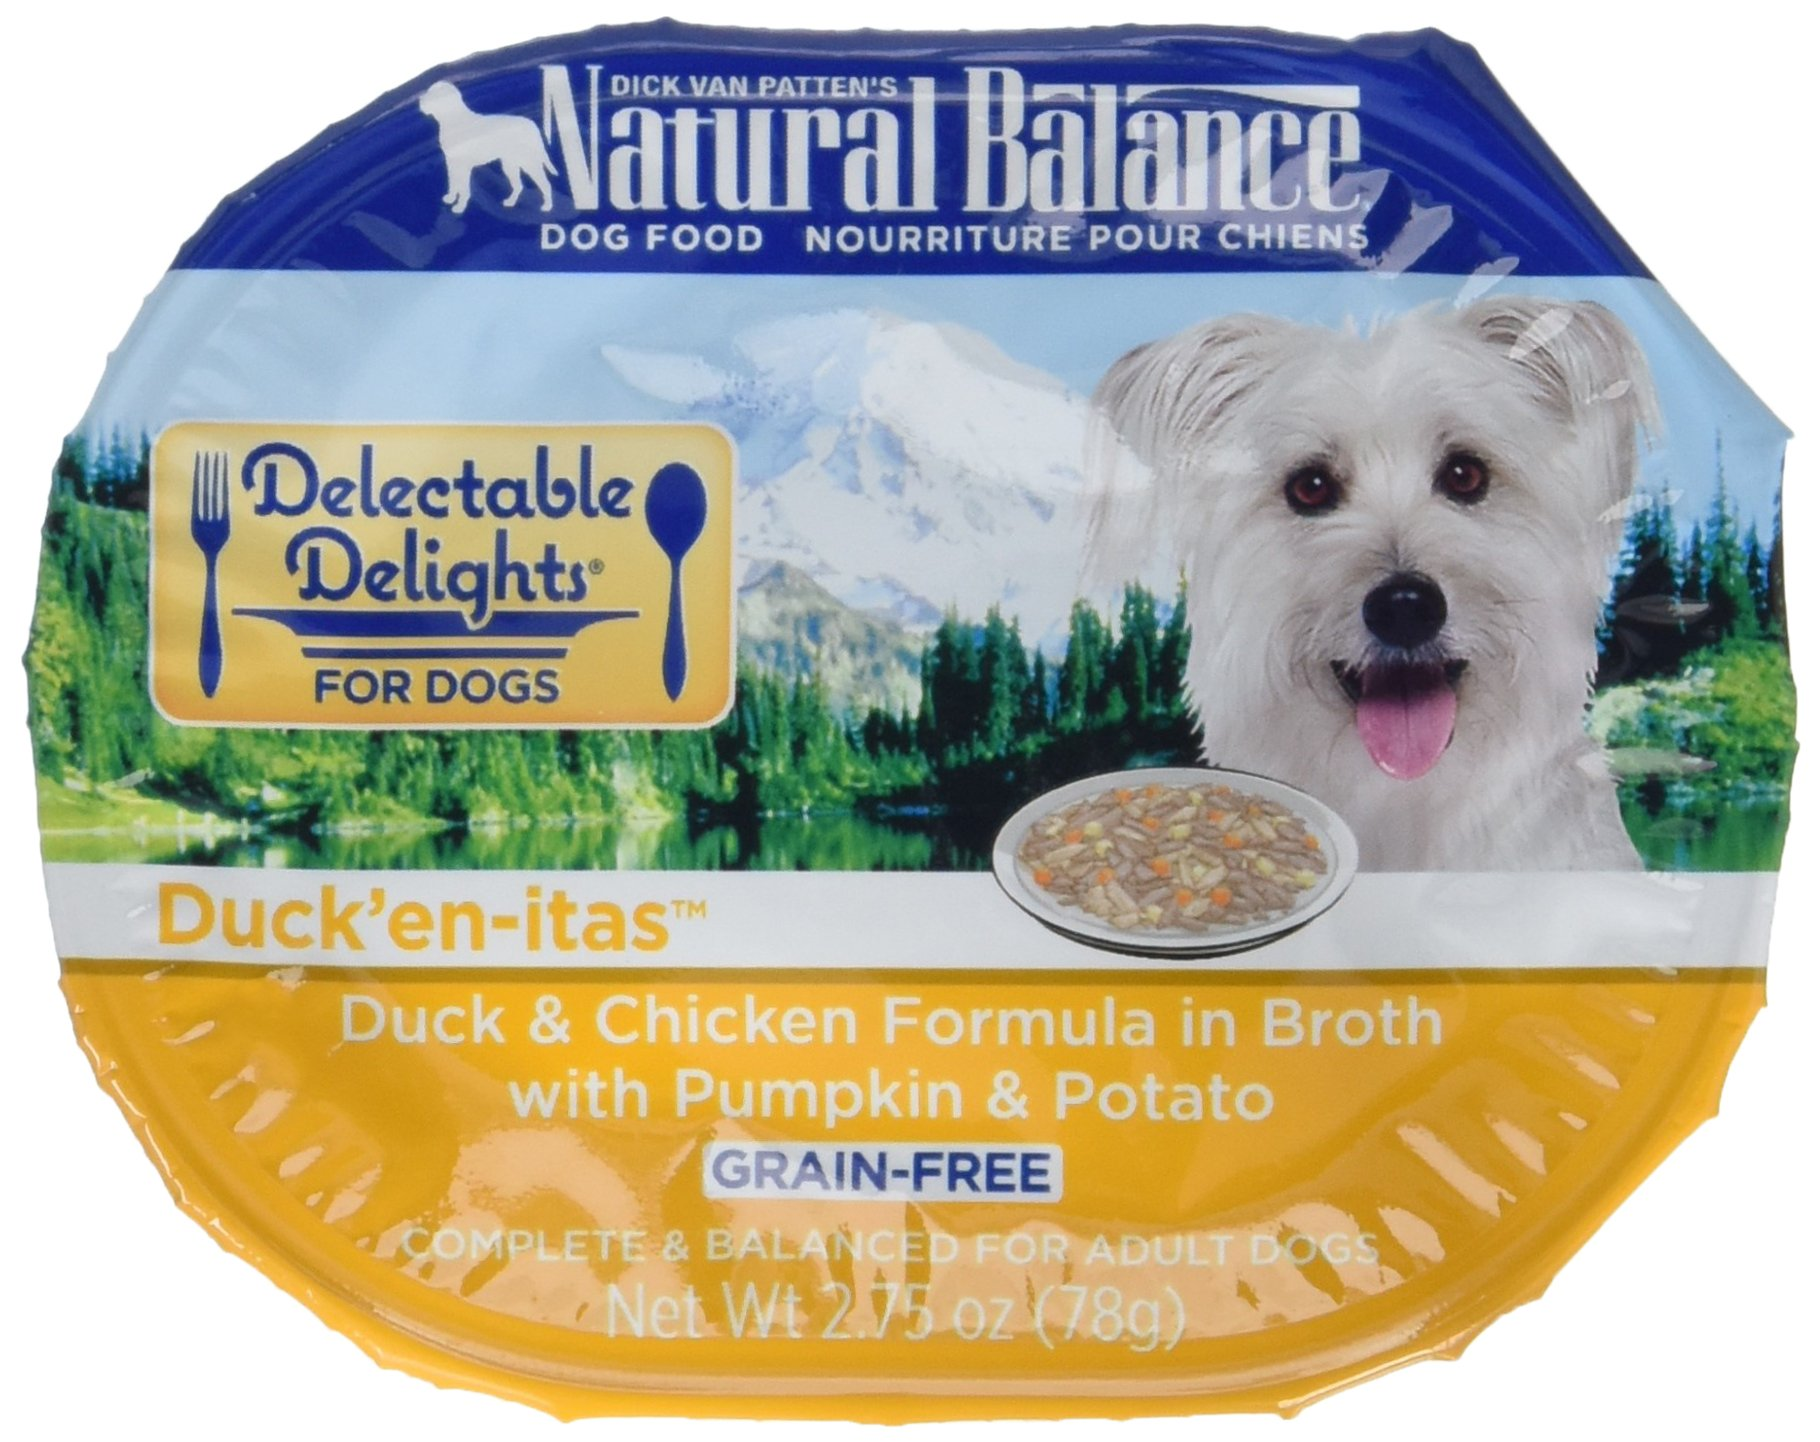 Natural Balance Delectable Delights Wet Dog Food Cups, Duck'En-Itas Duck And Chicken Formula In Broth With Pumpkin And Potato, 2.75 Oz (Pack Of 24)